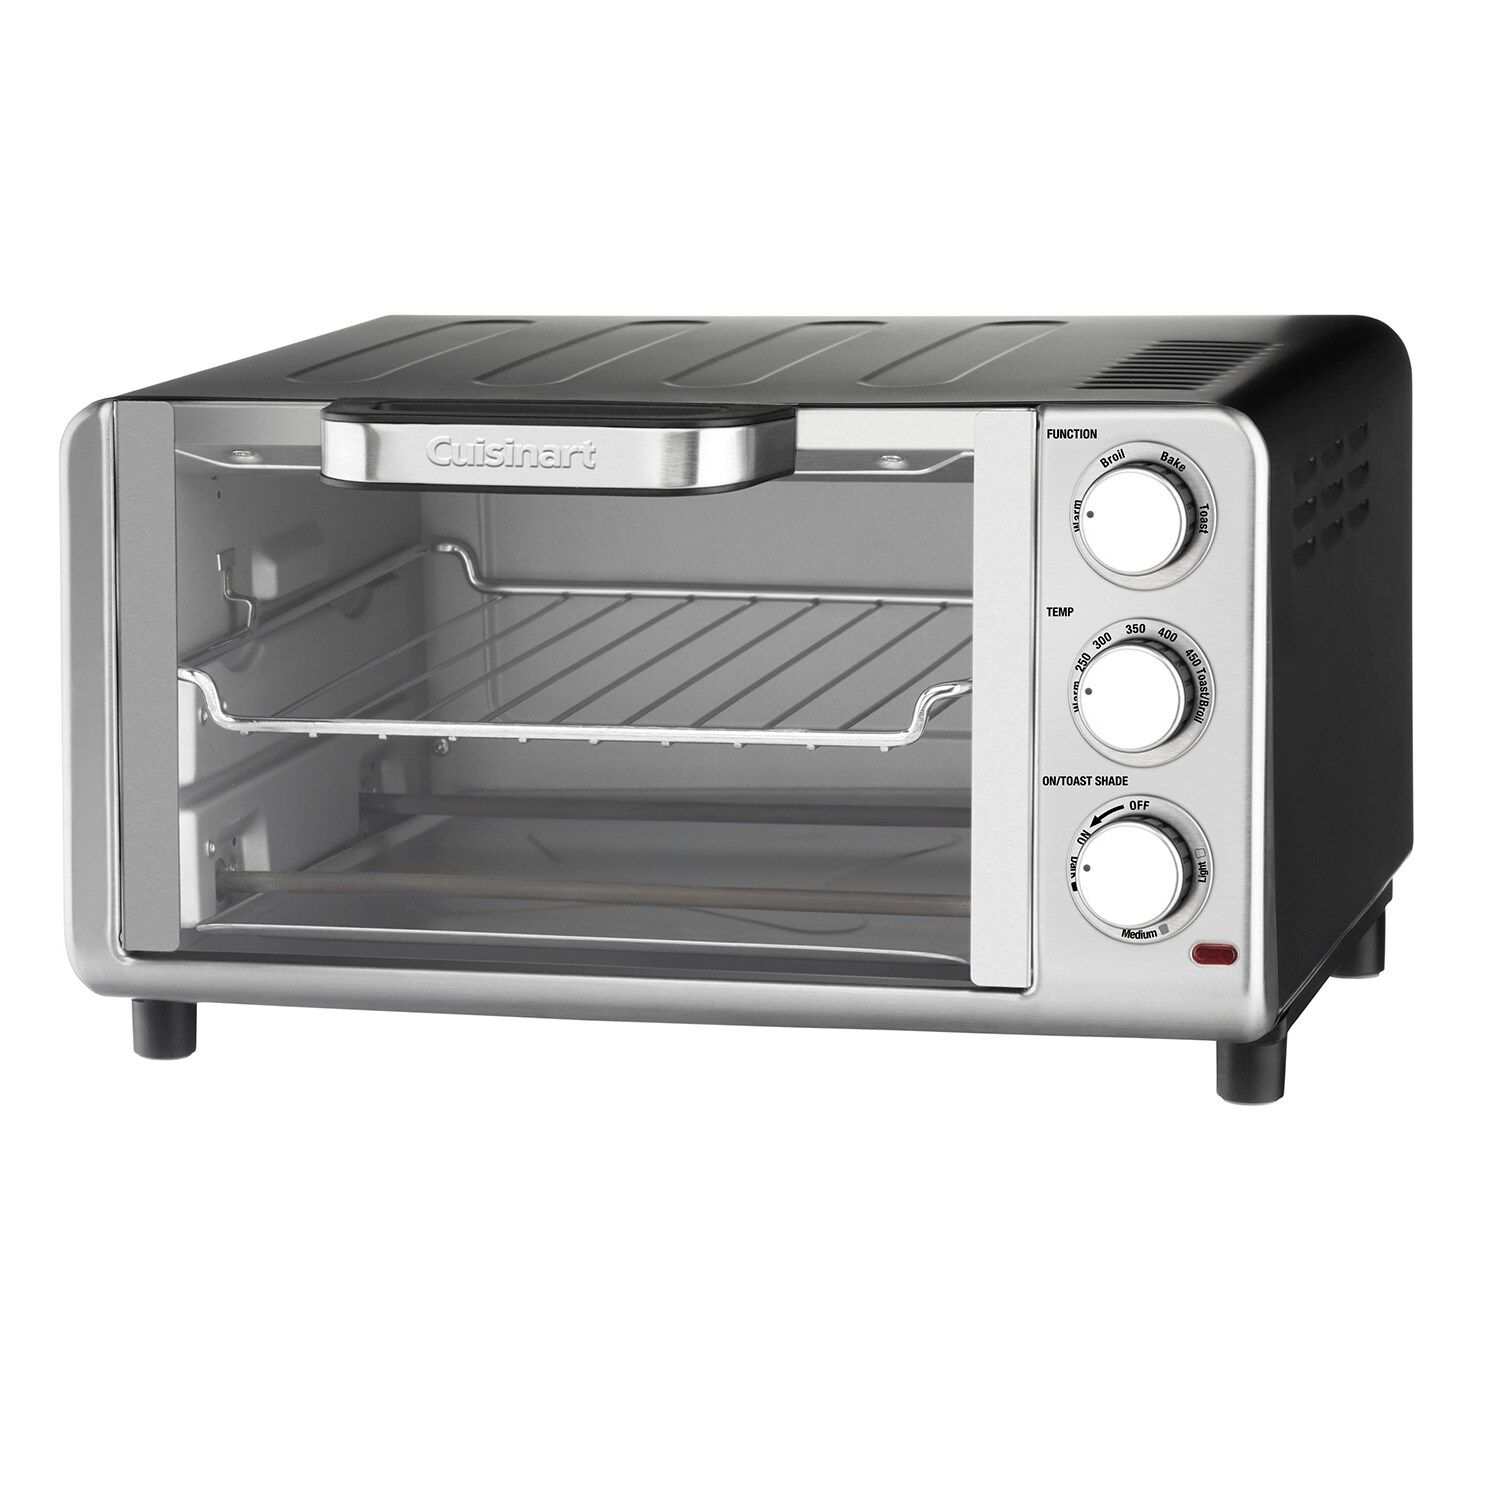 Cuisinart Compact Toaster Oven Compact Cuisinart Oven Toaster Cuisinart Toaster Oven Toaster Oven Reviews Convection Toaster Oven